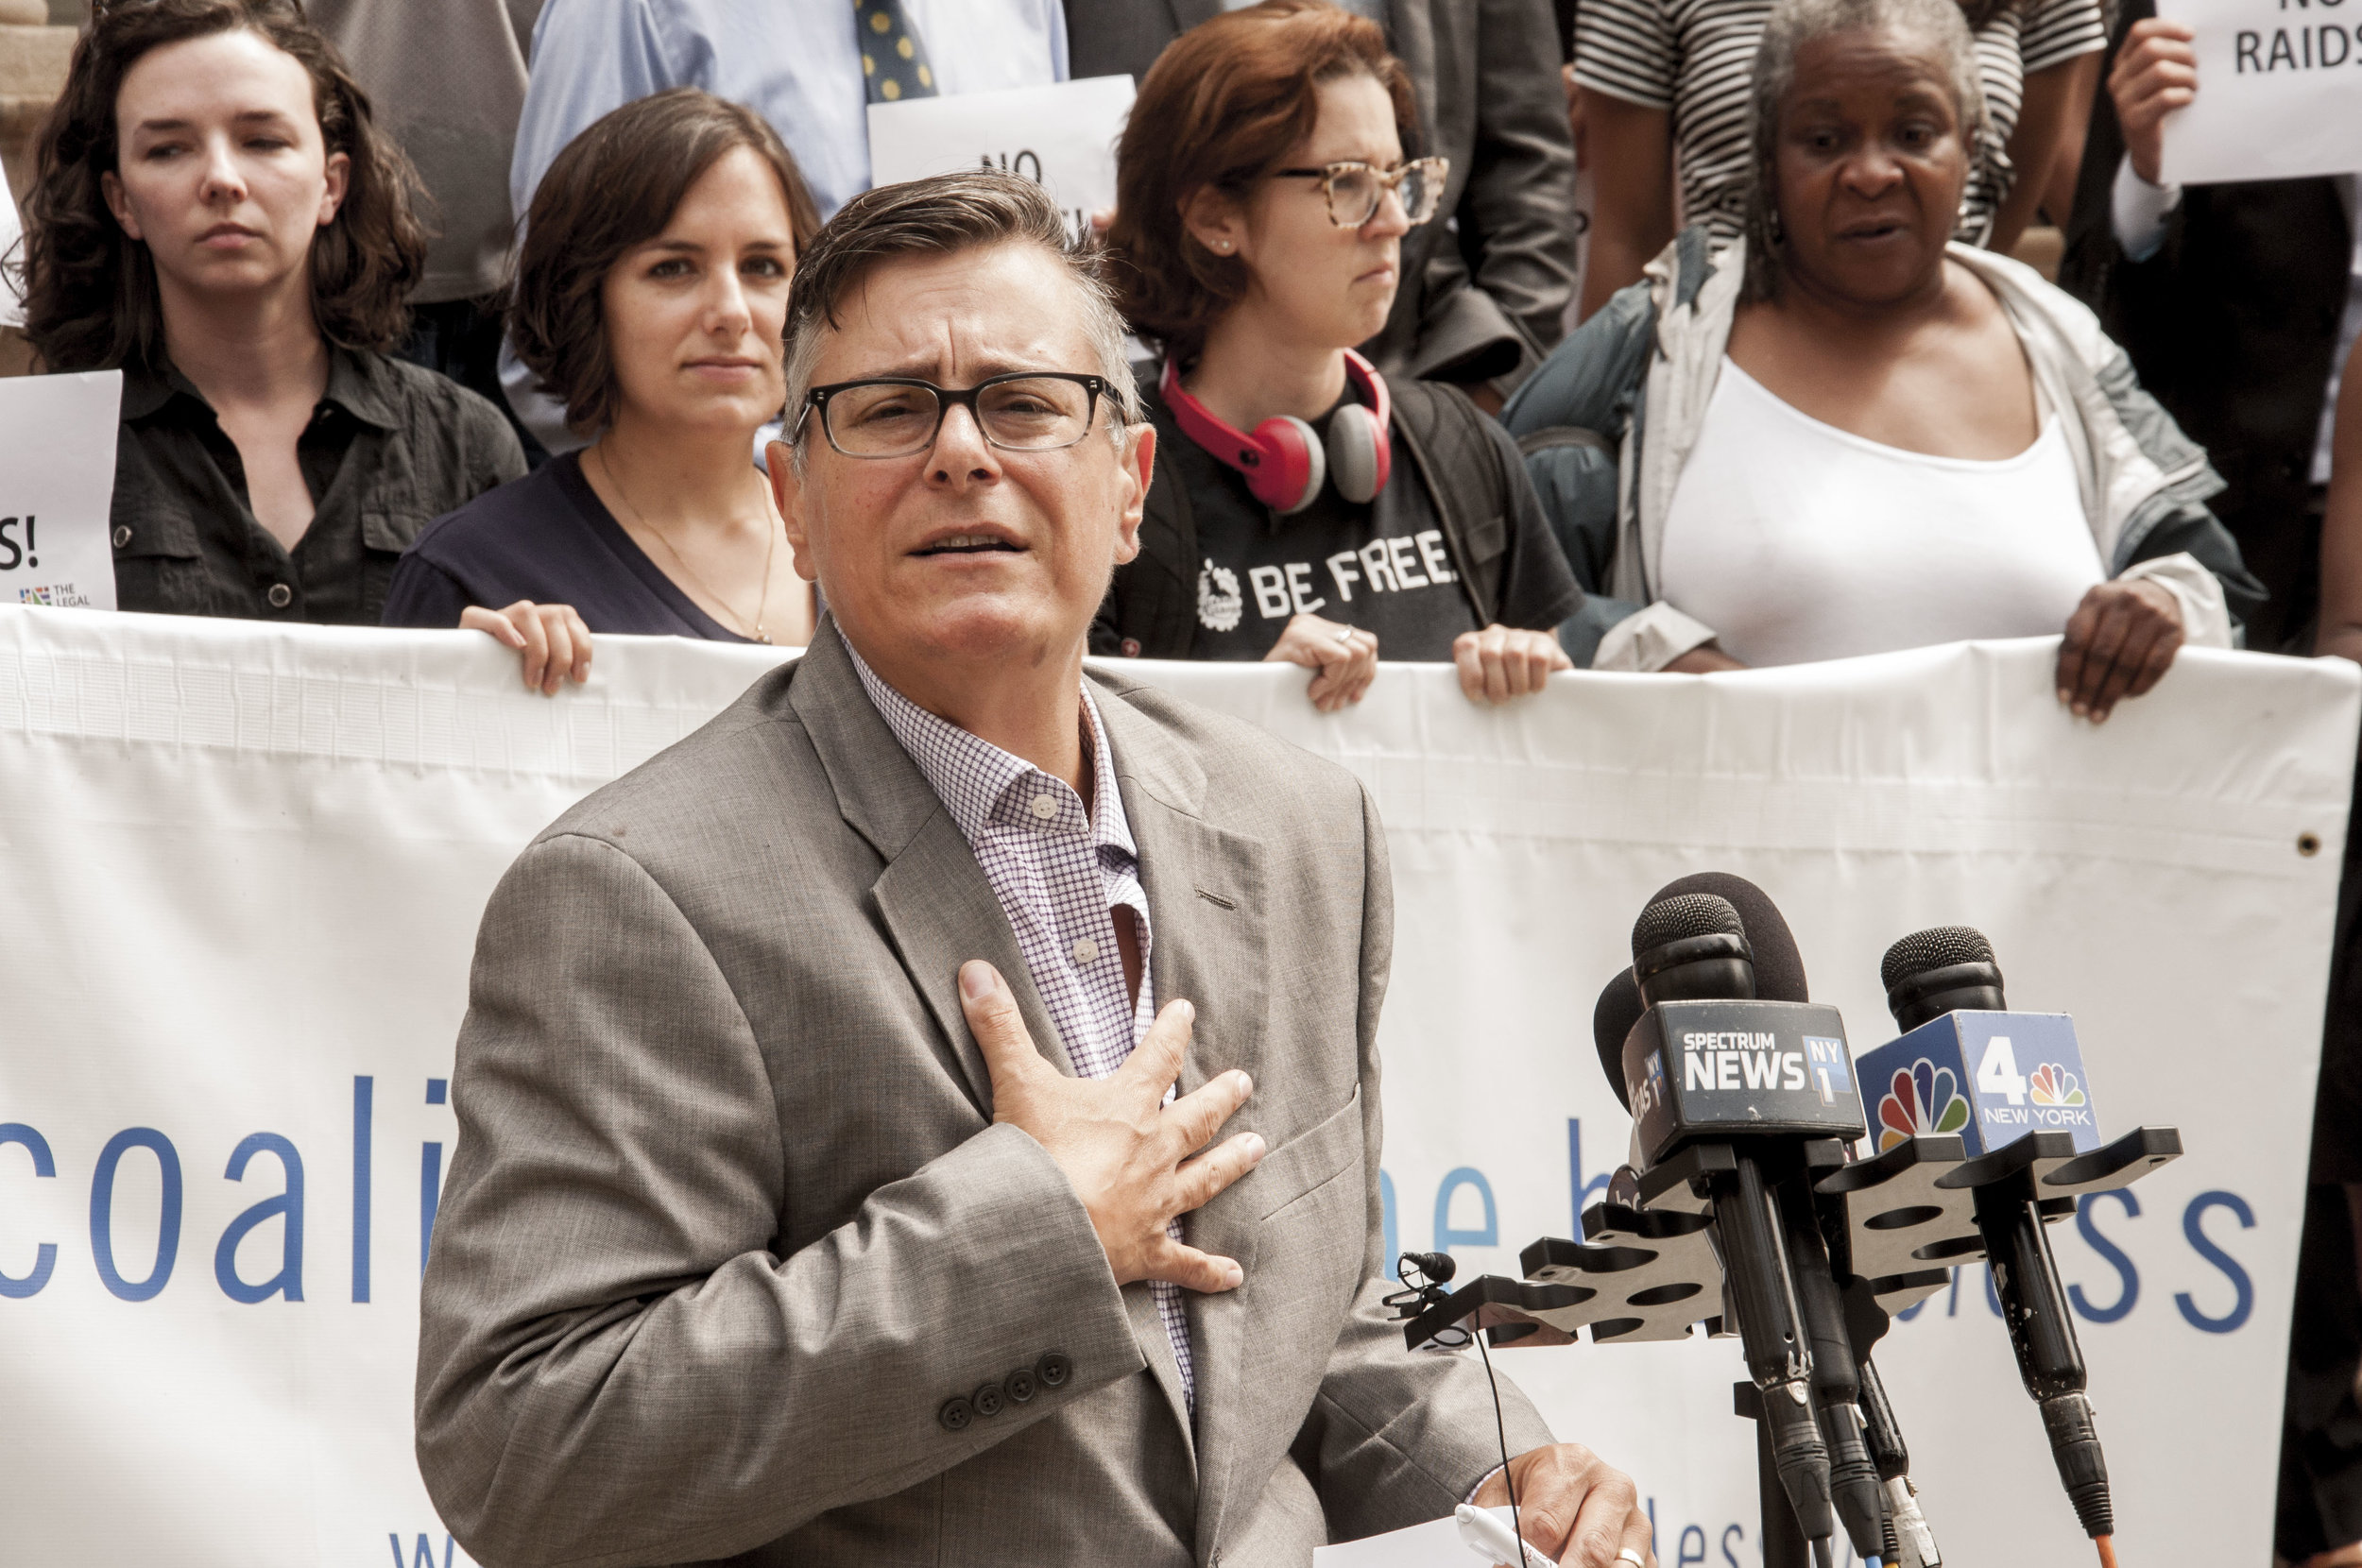 Advocating for incarcerated NYers - We offer essential support to LGBTQ+ New Yorkers in our city's jails and prisons